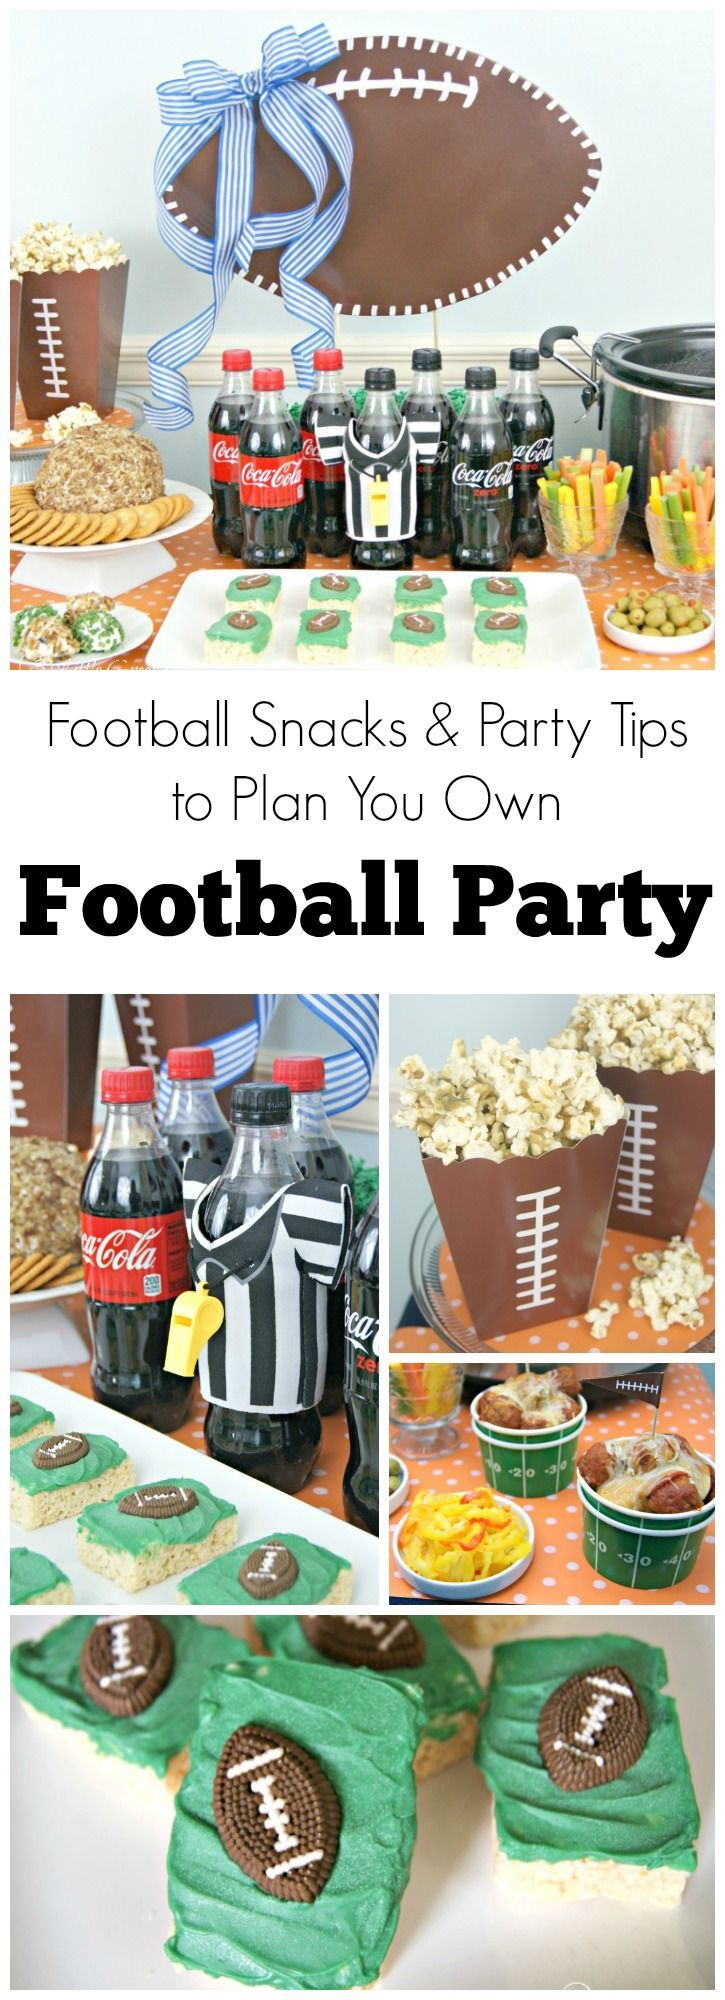 Host the best Super Bowl Party EVER! Plan a football party with simple tips for hosting a Super Bowl Party with football party food ideas and DIY decorating for a football party!